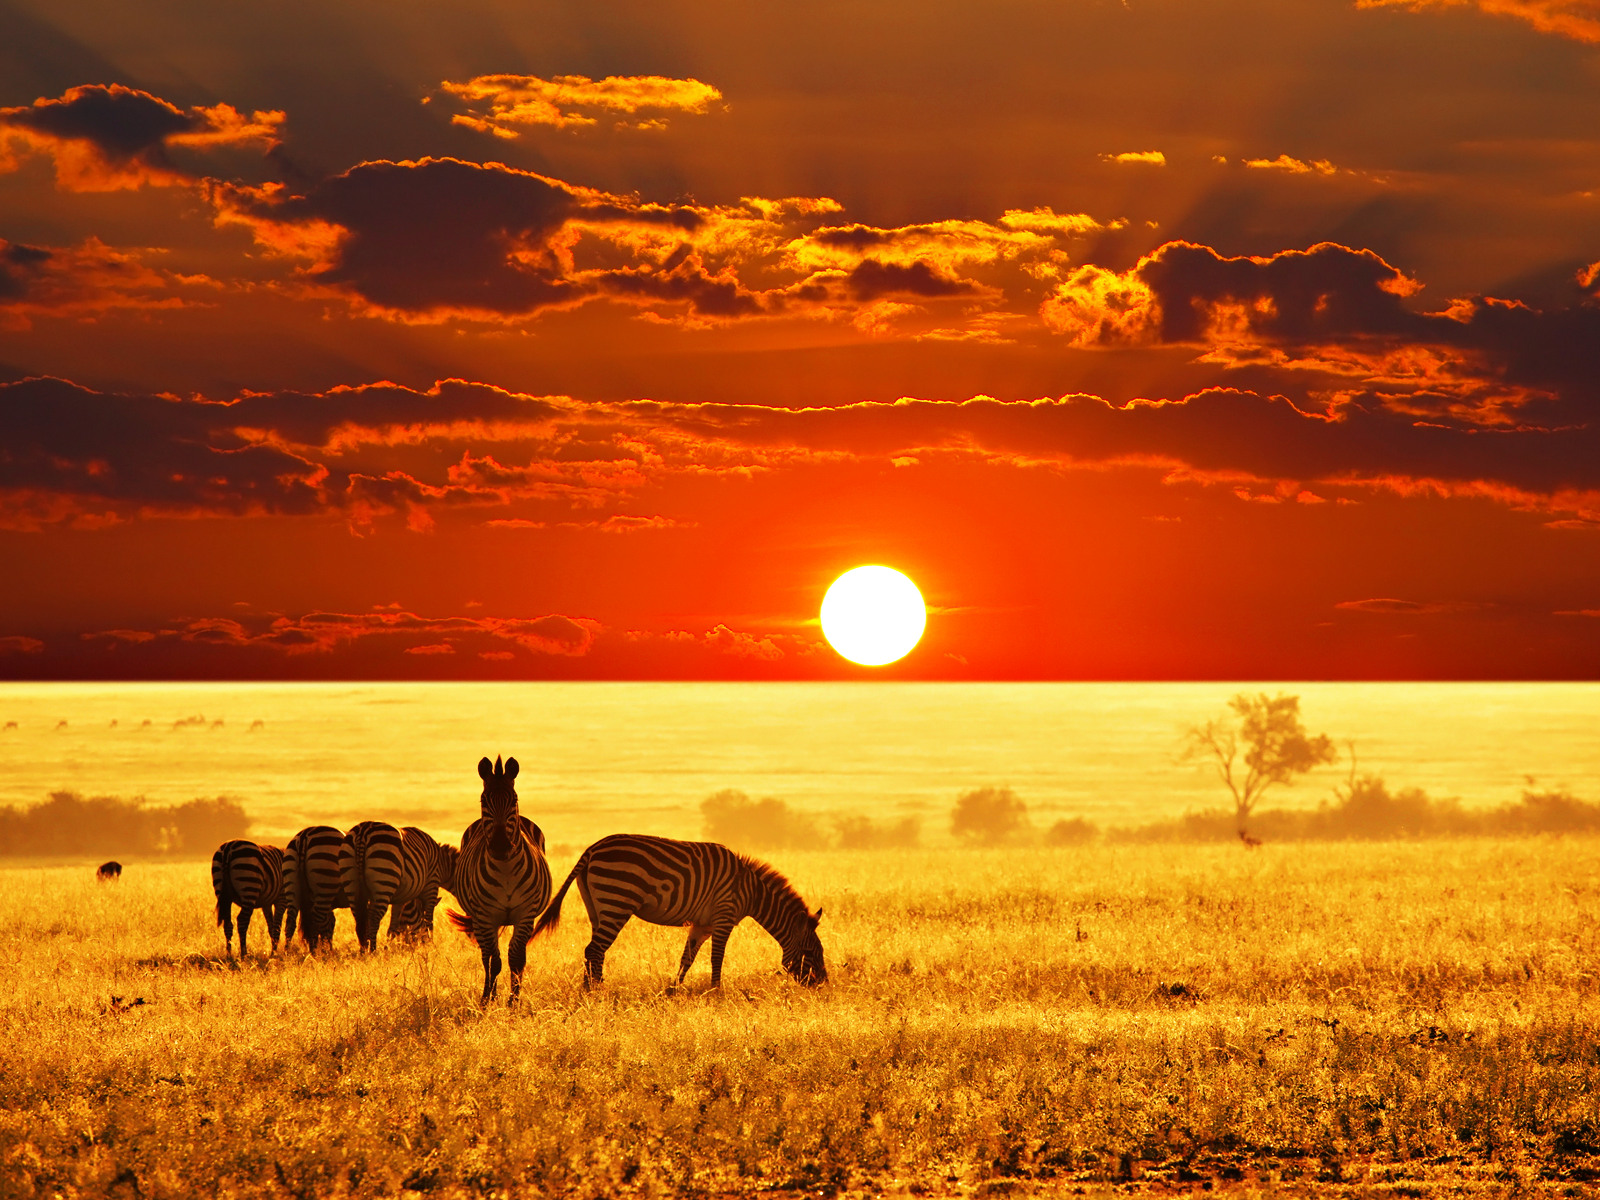 http://savannainafrica.files.wordpress.com/2012/01/african-savannah-zebras-wall-inkbluesky6.png